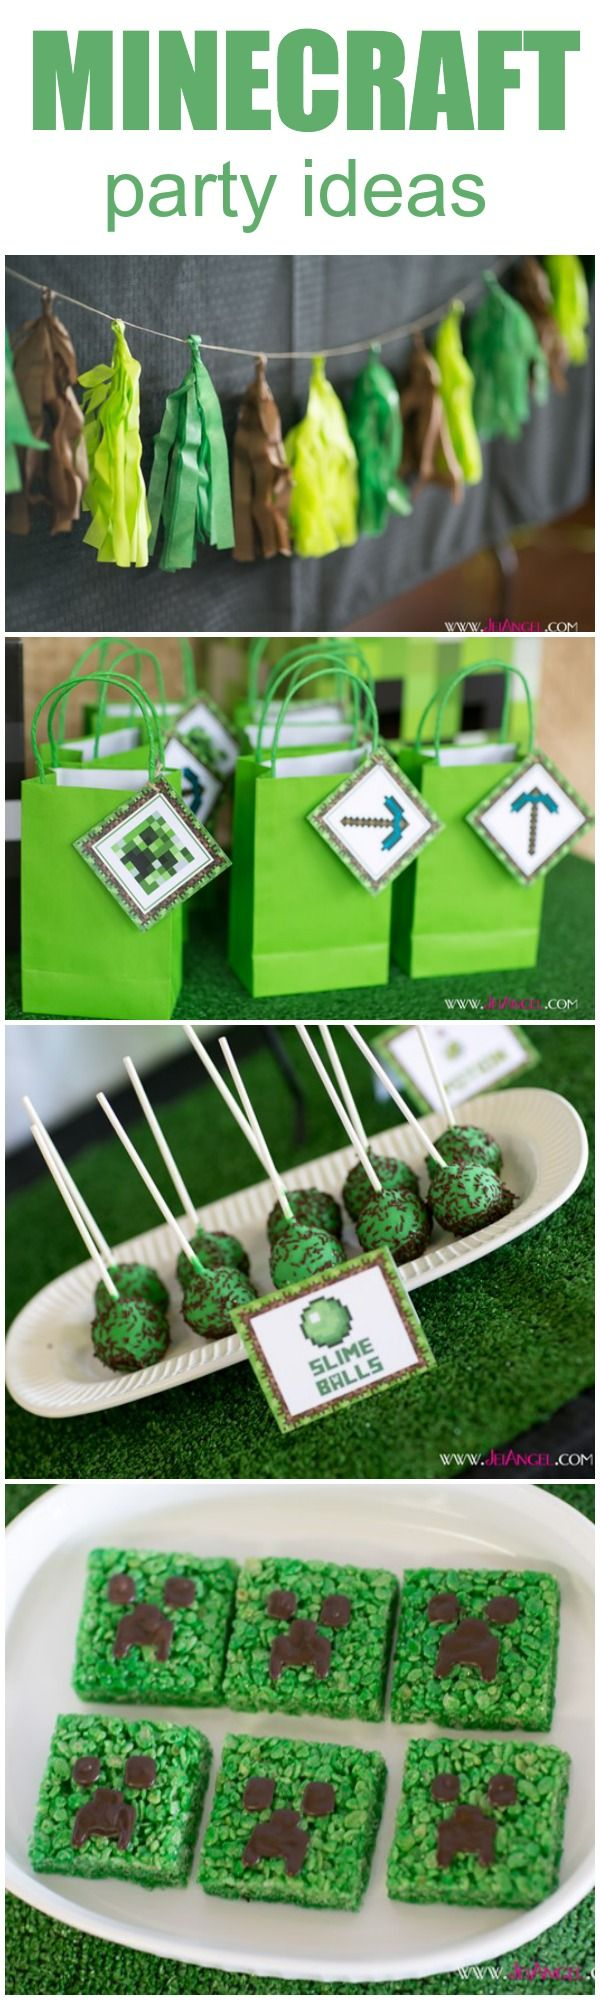 Awesome and easy MINECRAFT party ideas!